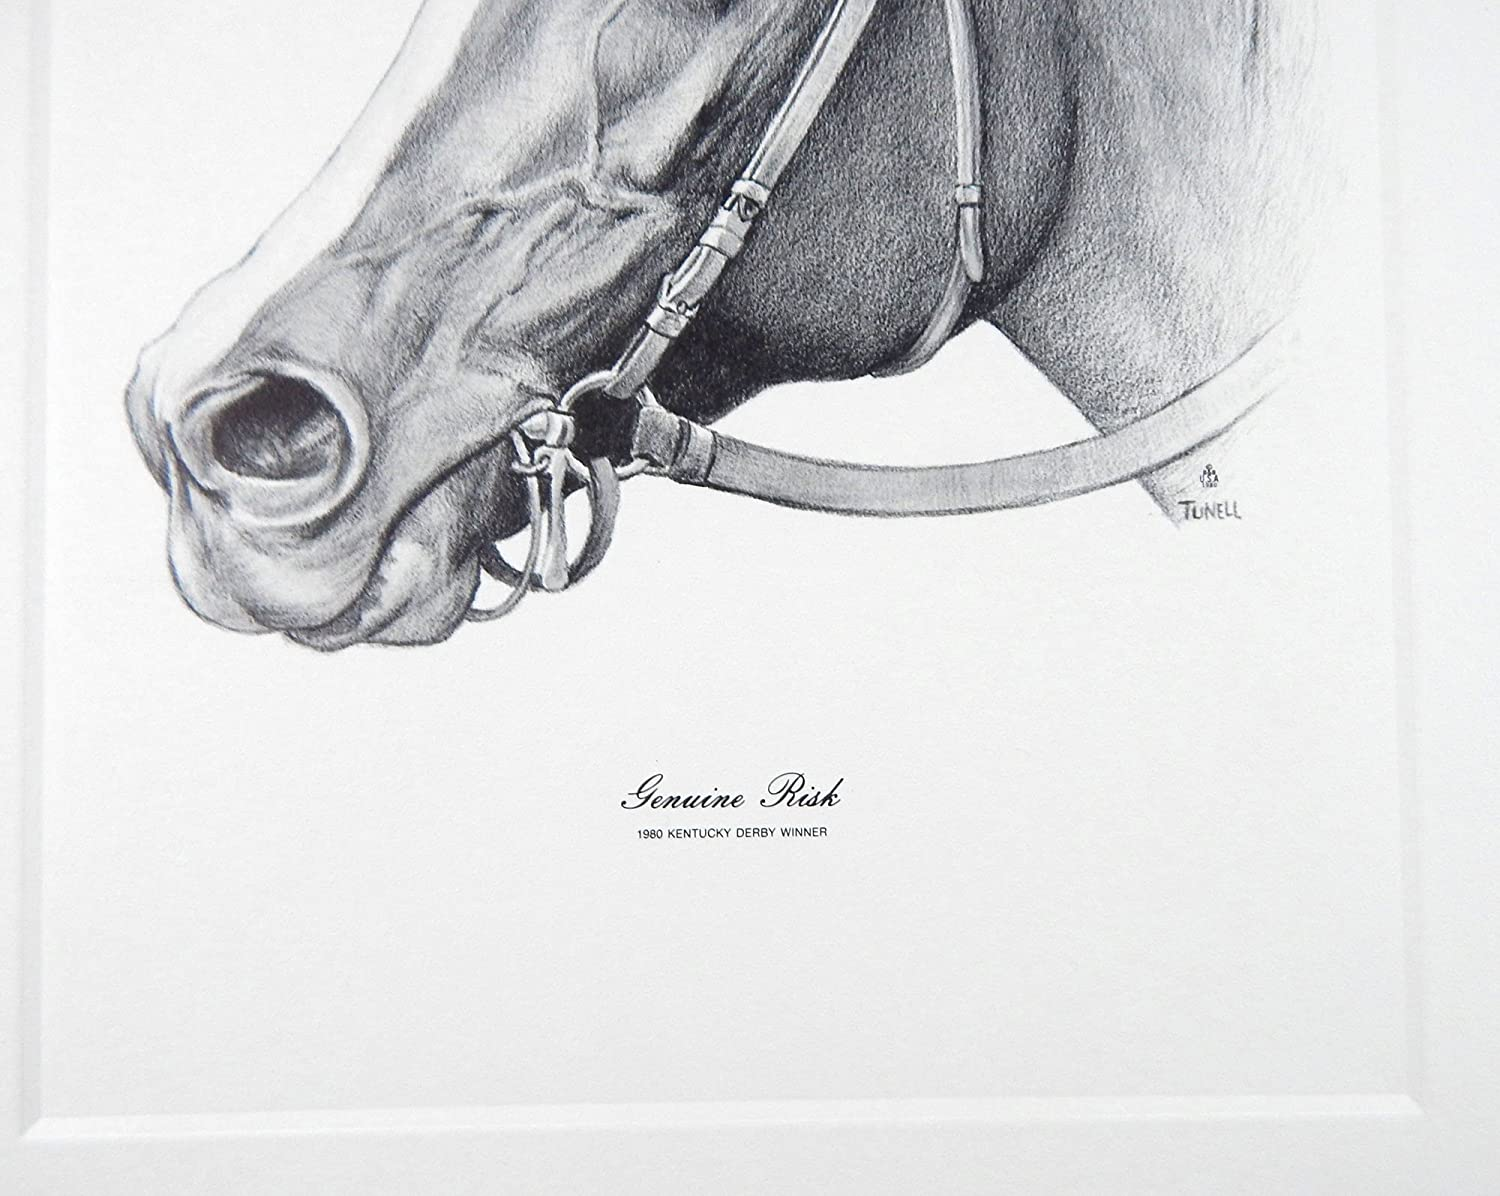 Amazon Vintage 1980 Jack Tunell Genuine Risk Kentucky Derby Winner Talio Chrome Print Posters Prints